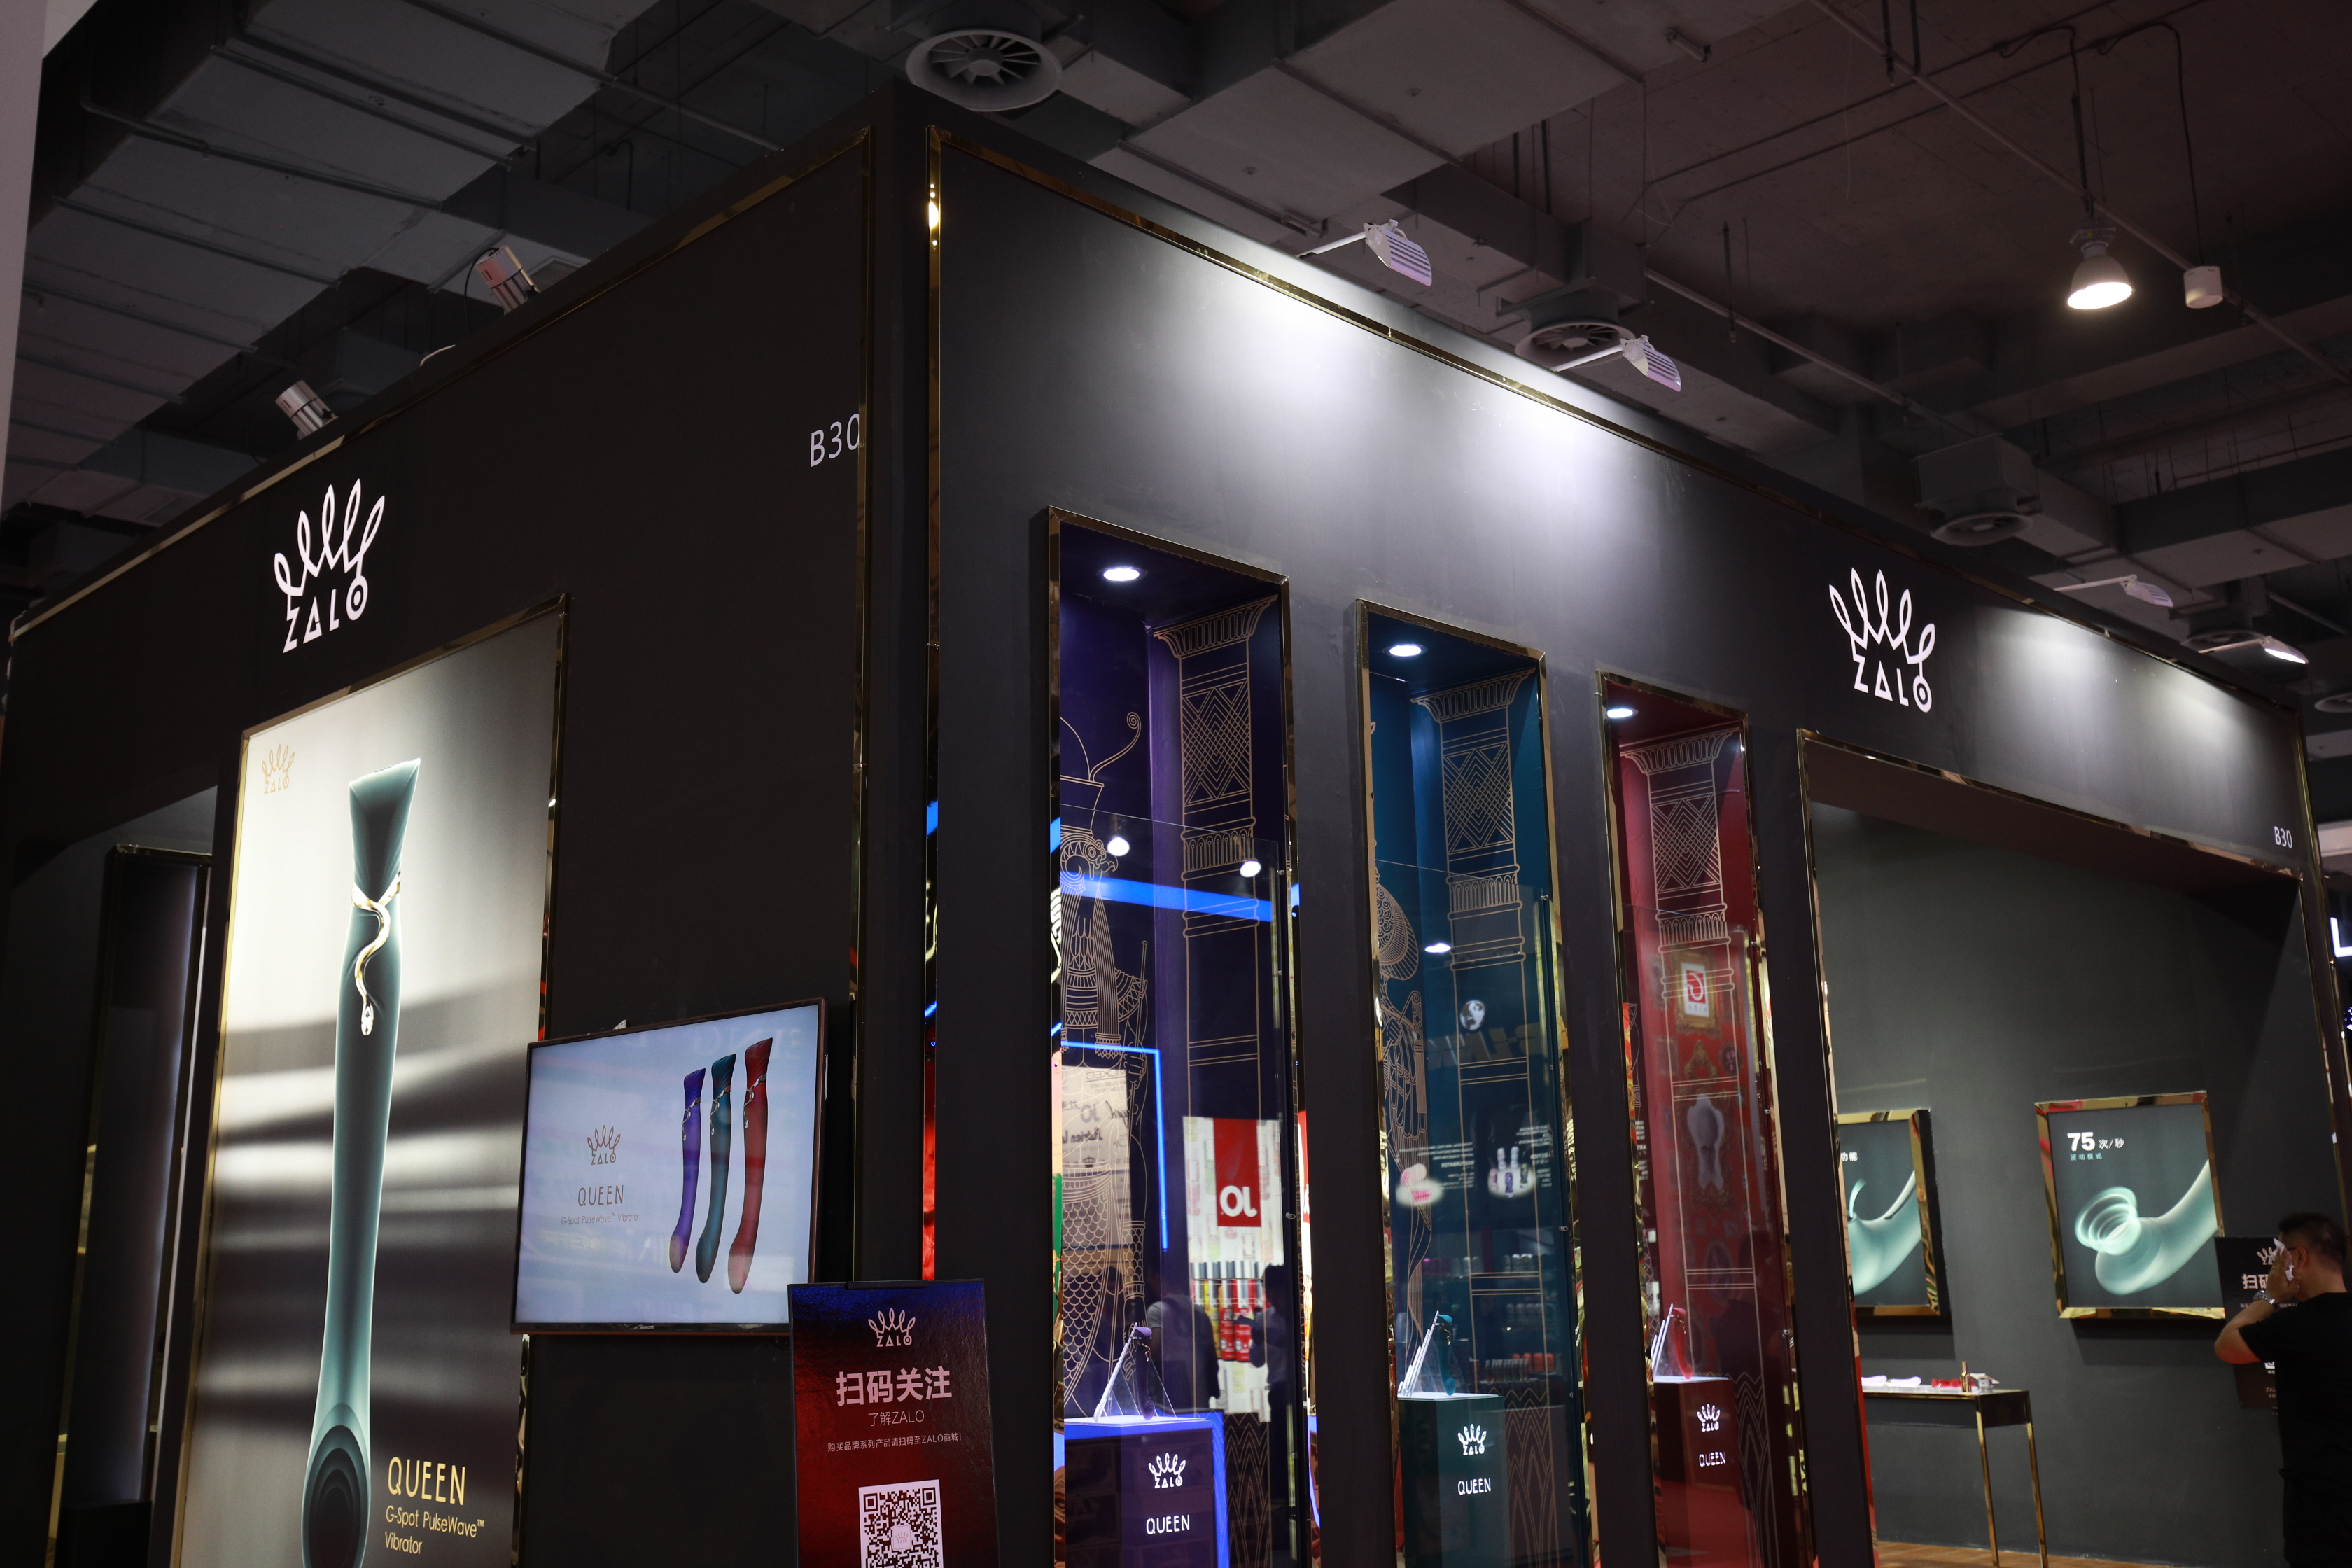 ZALO at the 2018 Shanghai ADC EXPO